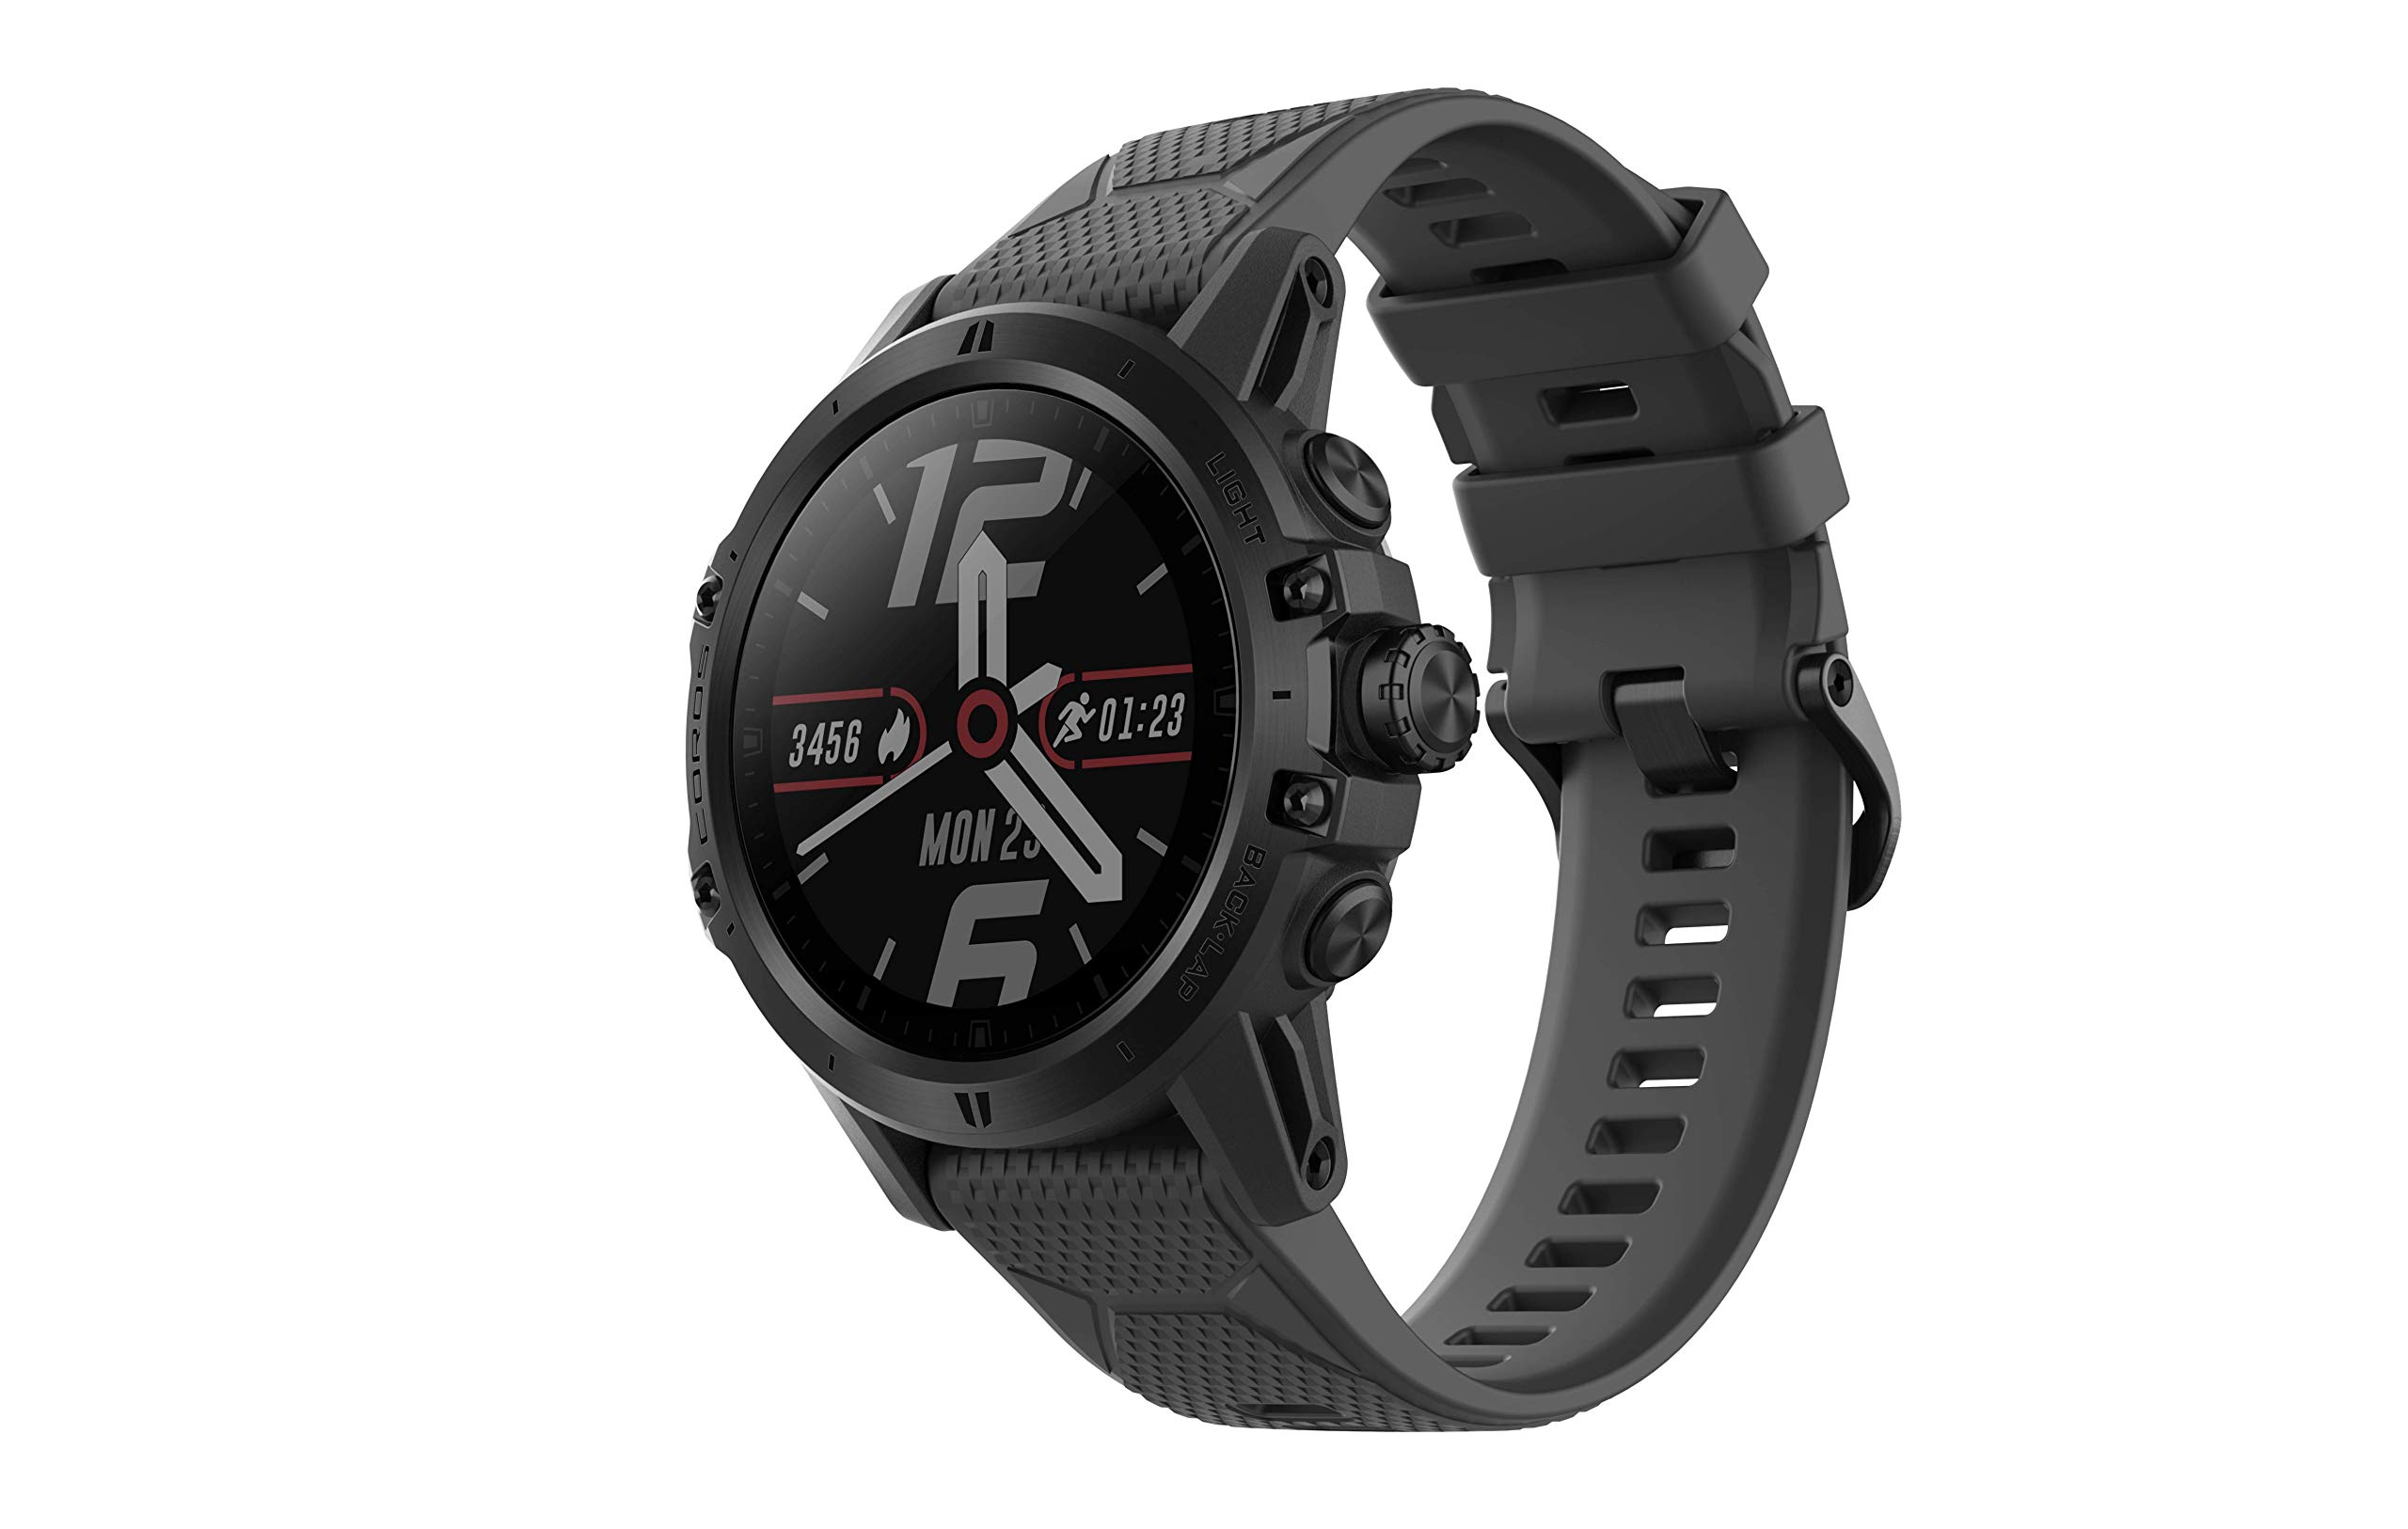 COROS VERTIX GPS Adventure Watch with Pulse Oximeter,Titanium Bazel/Cover with Sapphire Glass (DLC Coating),24/7 Blood Oxygen Monitoring, Trainer and Ultra-Durable Battery Life (Dark Rock) by COROS